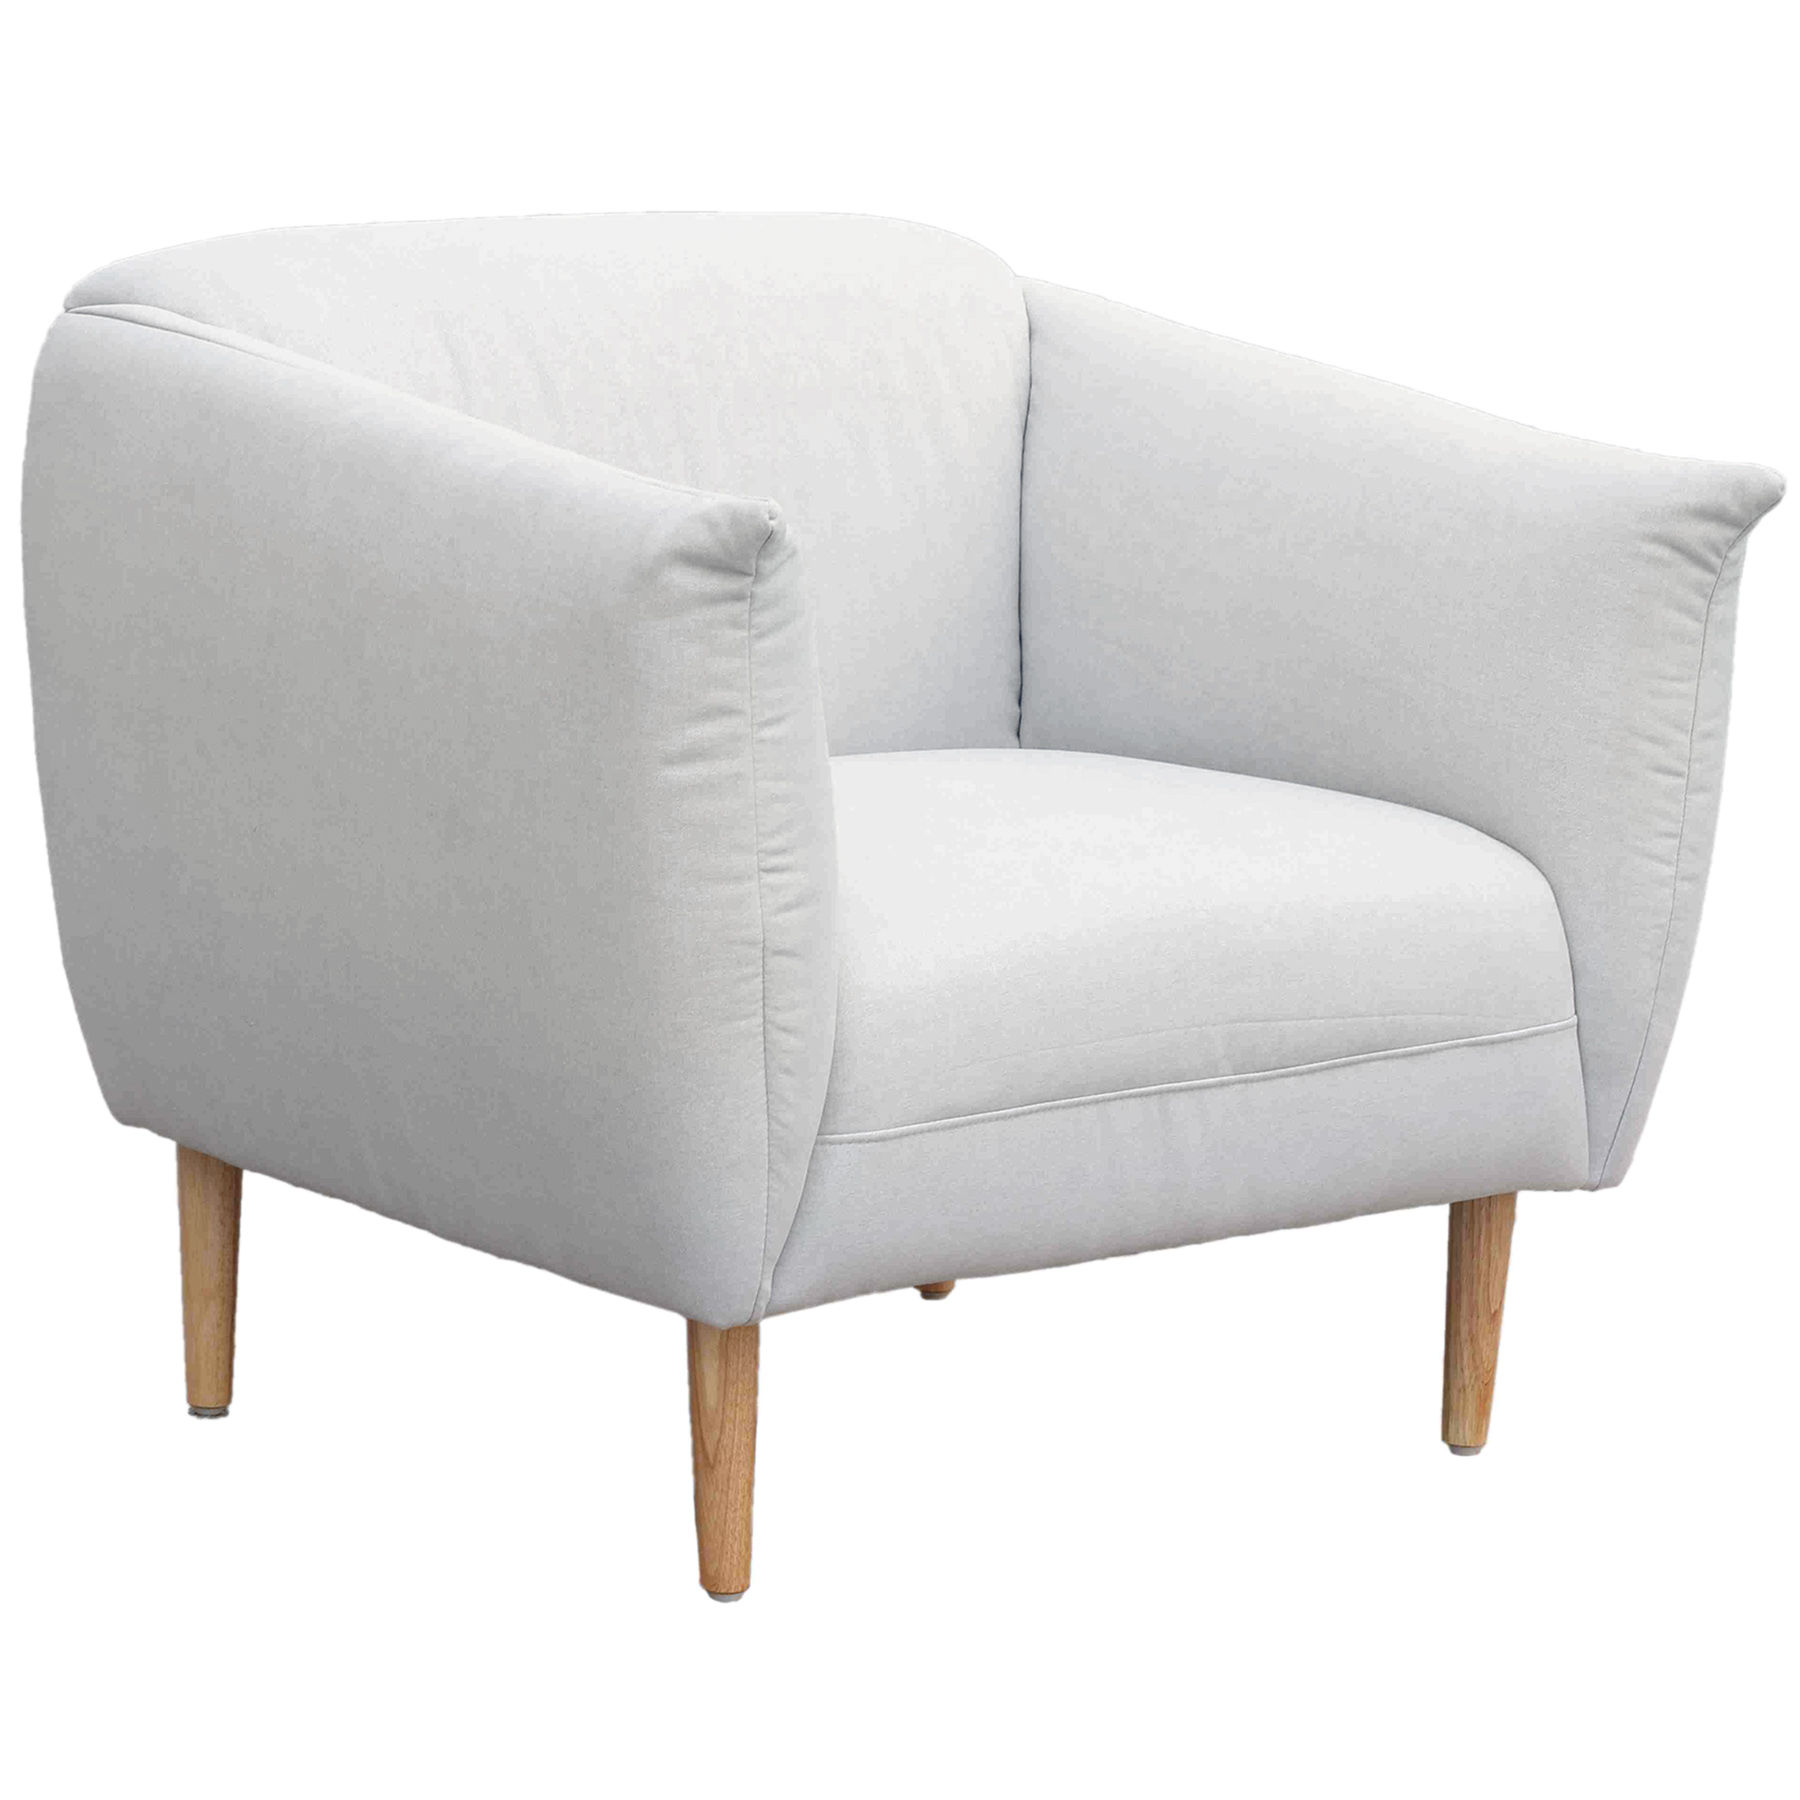 Q1 Overstuffed Occasional Chair, Light Grey